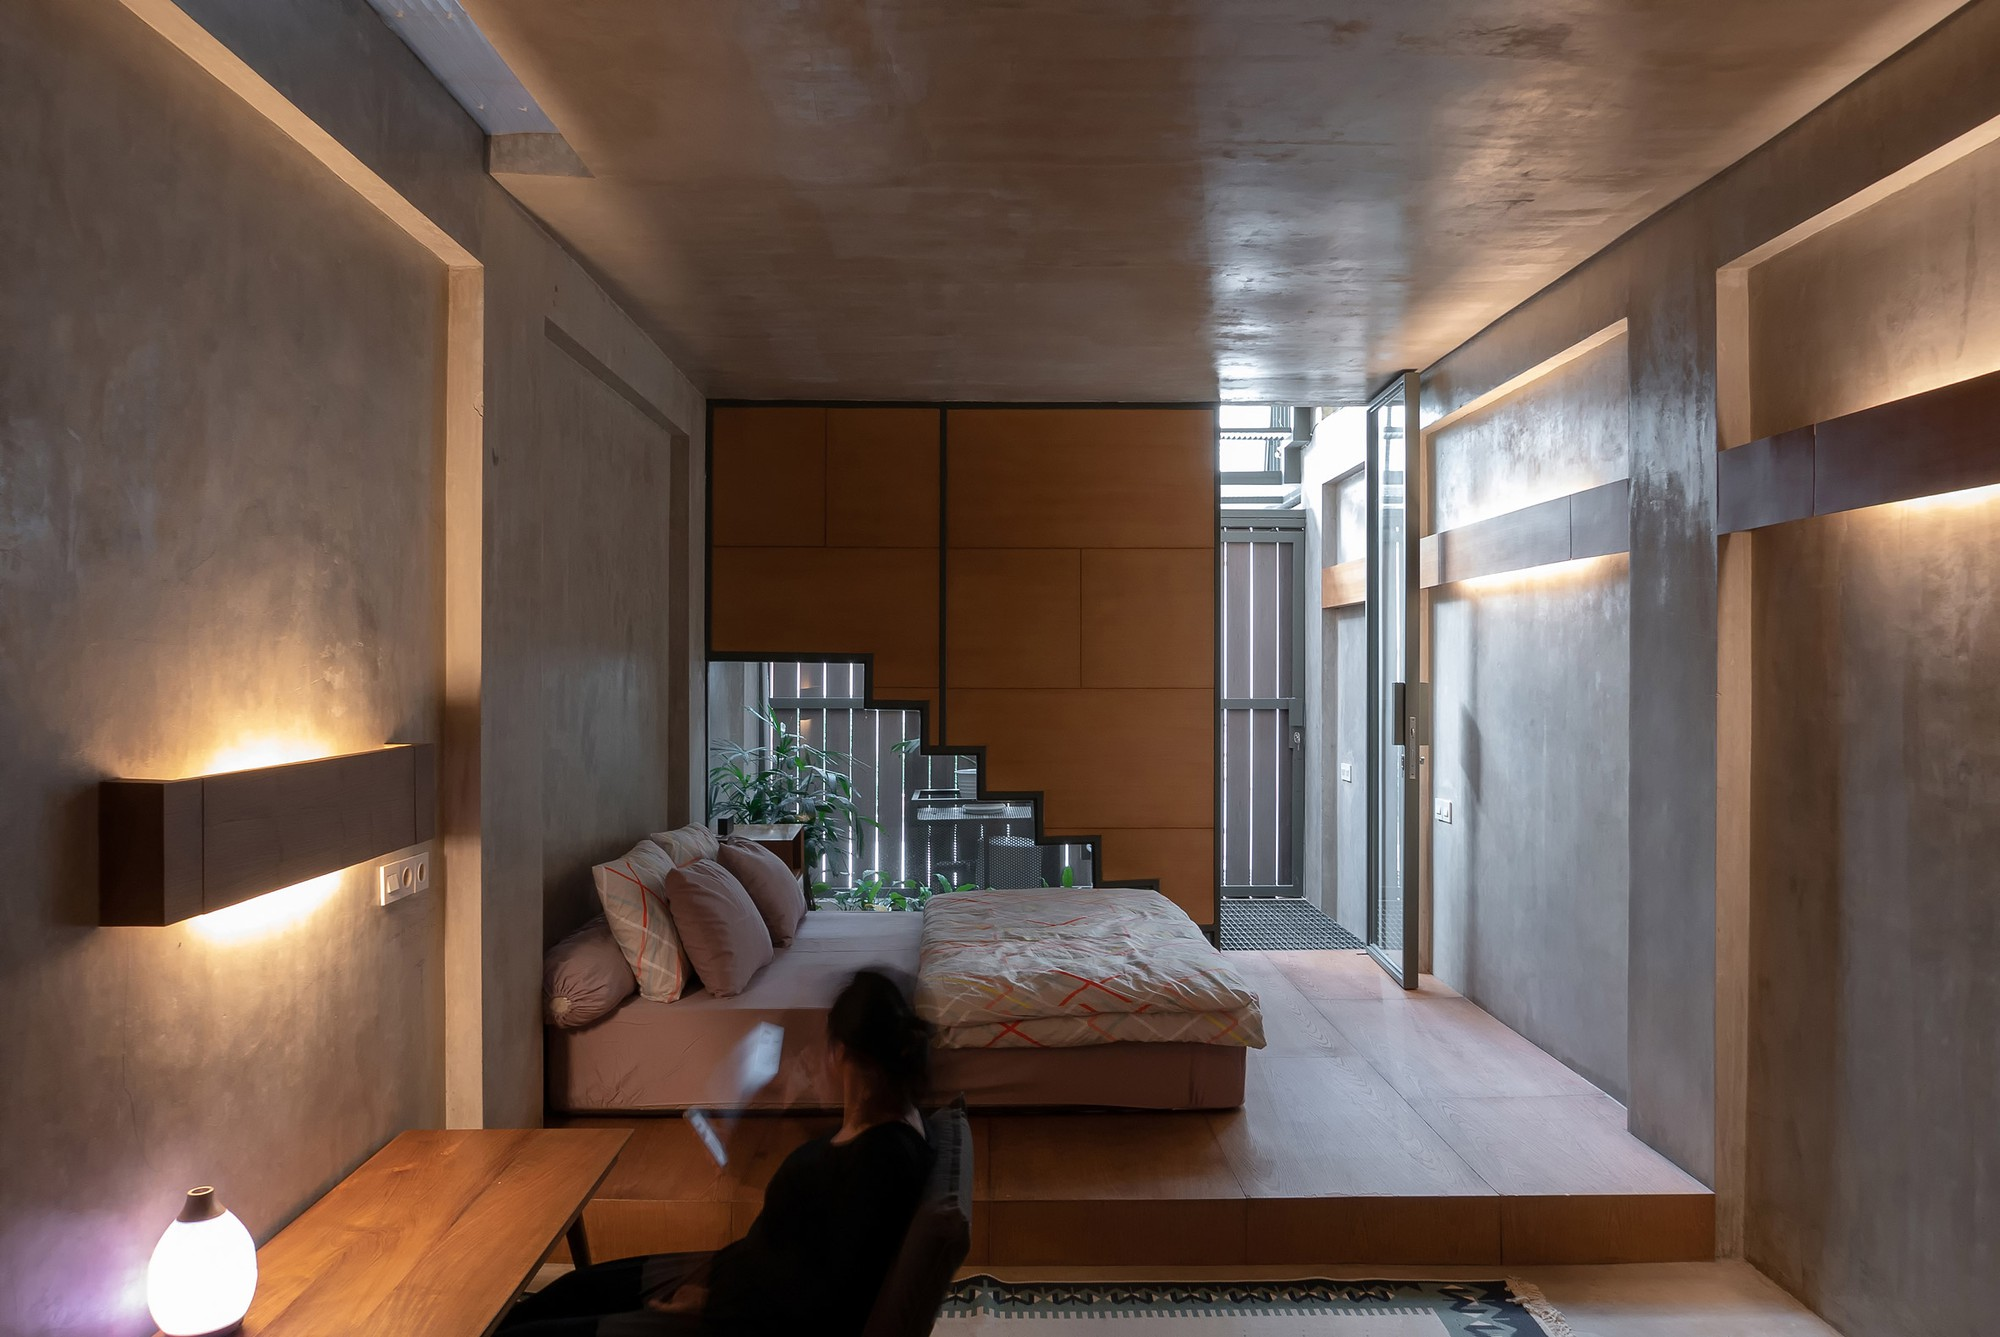 3500-millimetre-house-ago-architects-architecture-residential-indonesia-skinny-houses_dezeen_2364_col_8